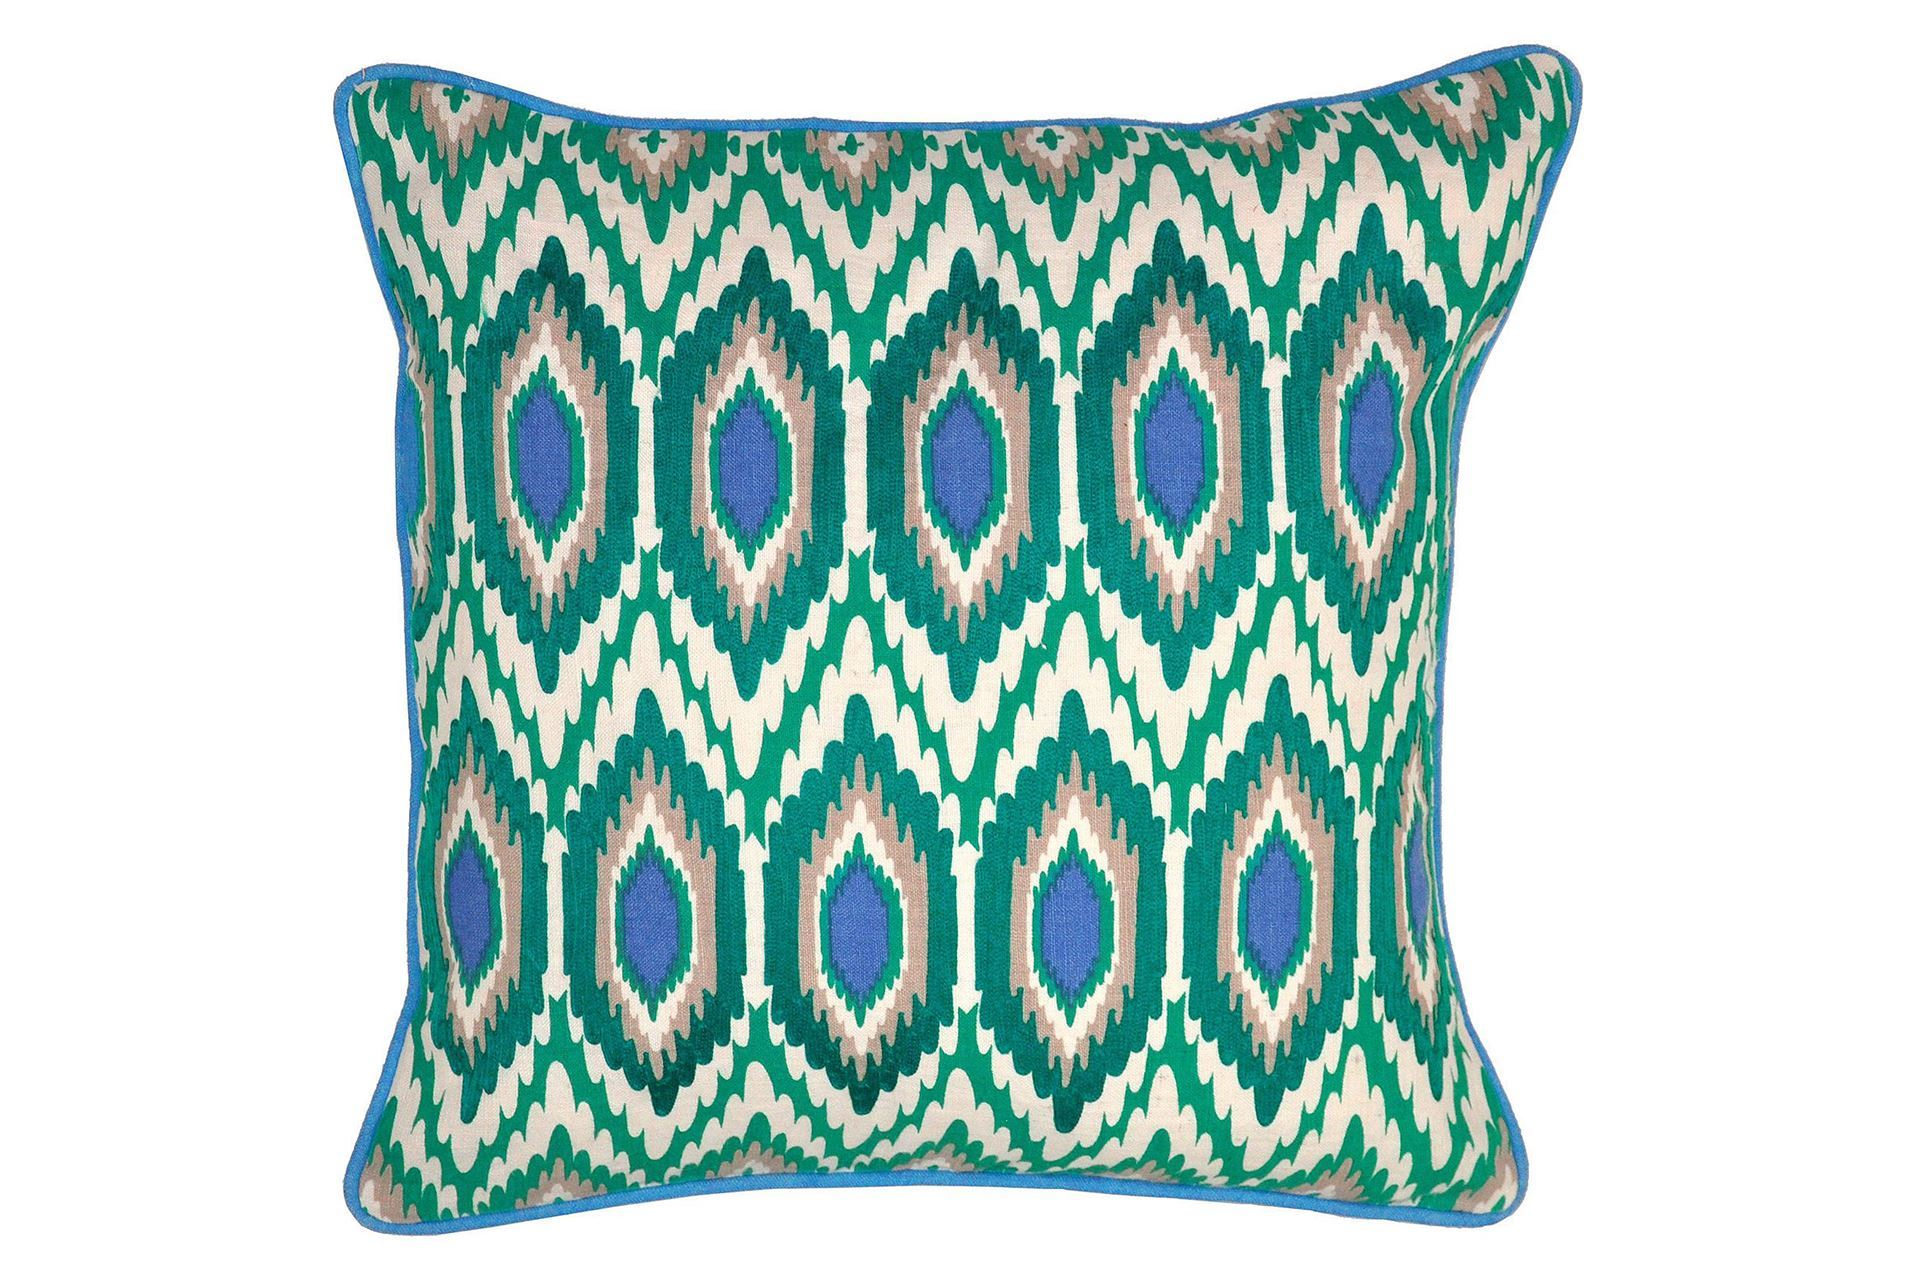 Decorative Pillows Living Spaces : Accent Pillow-Adira Hexagons Turquoise 18X18 - Living Spaces